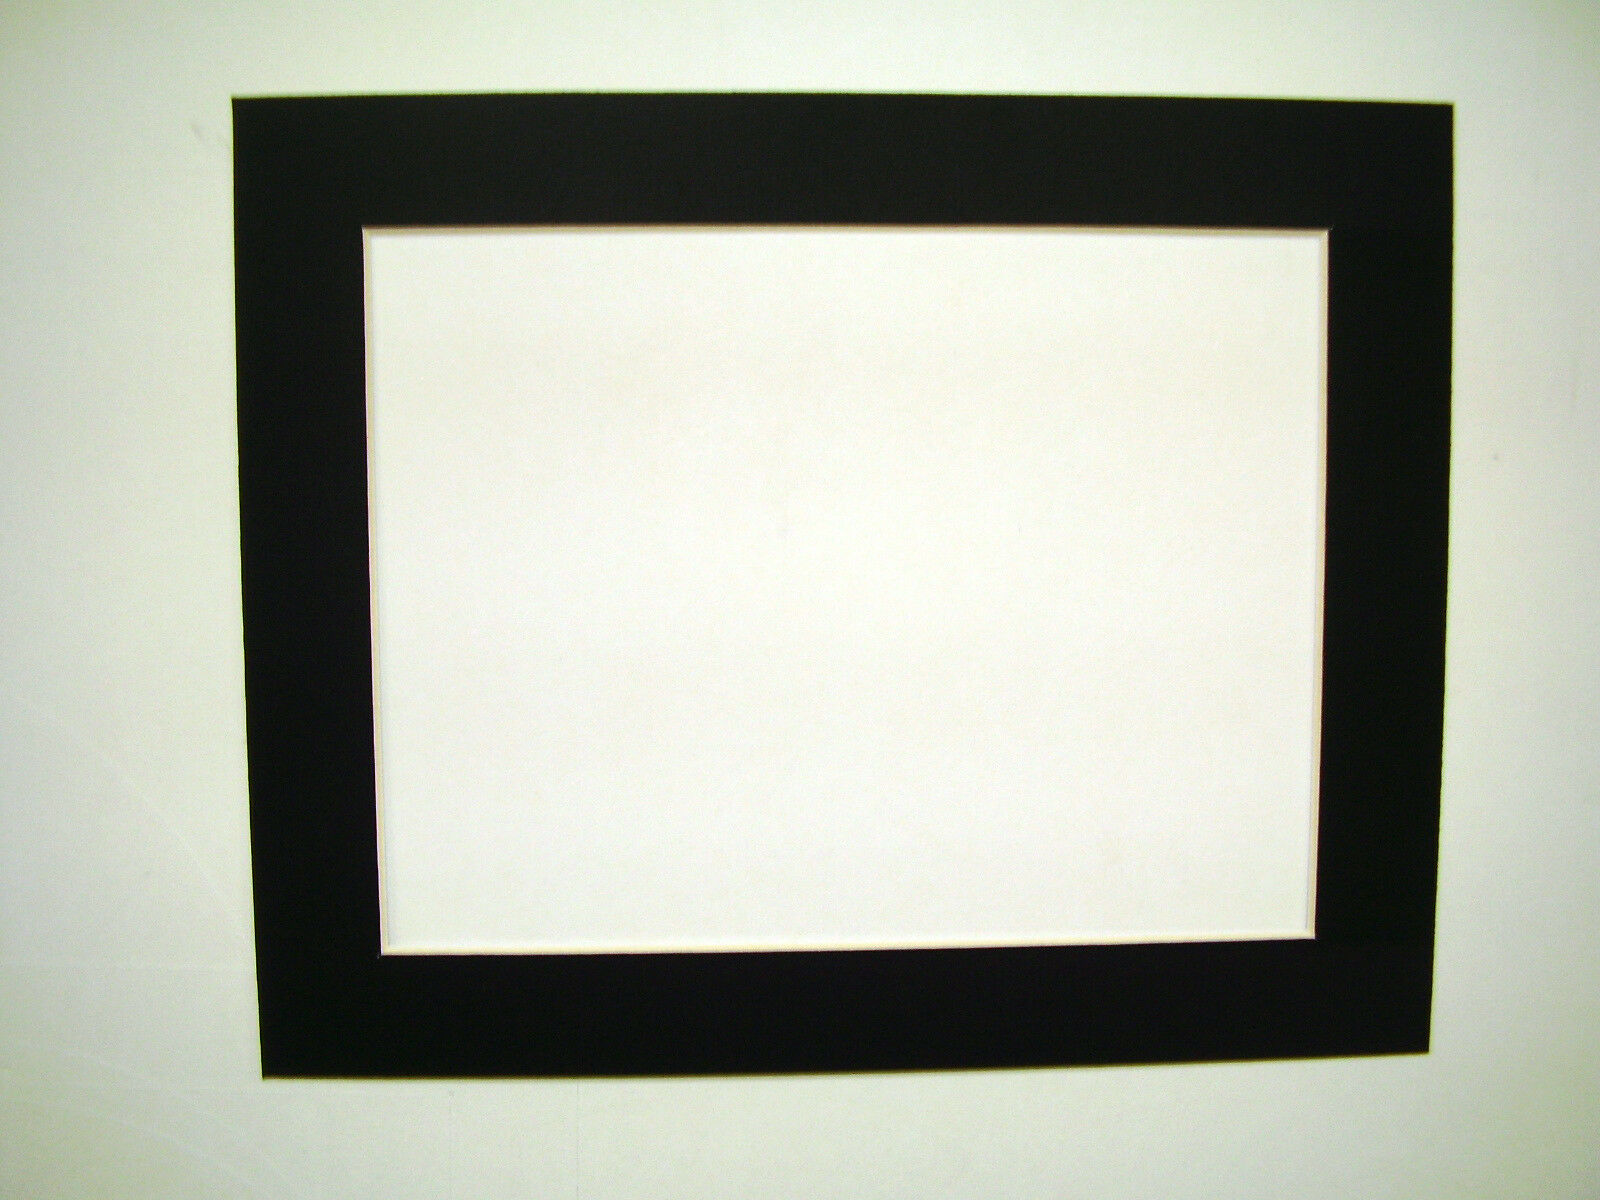 Picture Framing Single Mats 11x14 for 9x12 Art Black With White Core ...